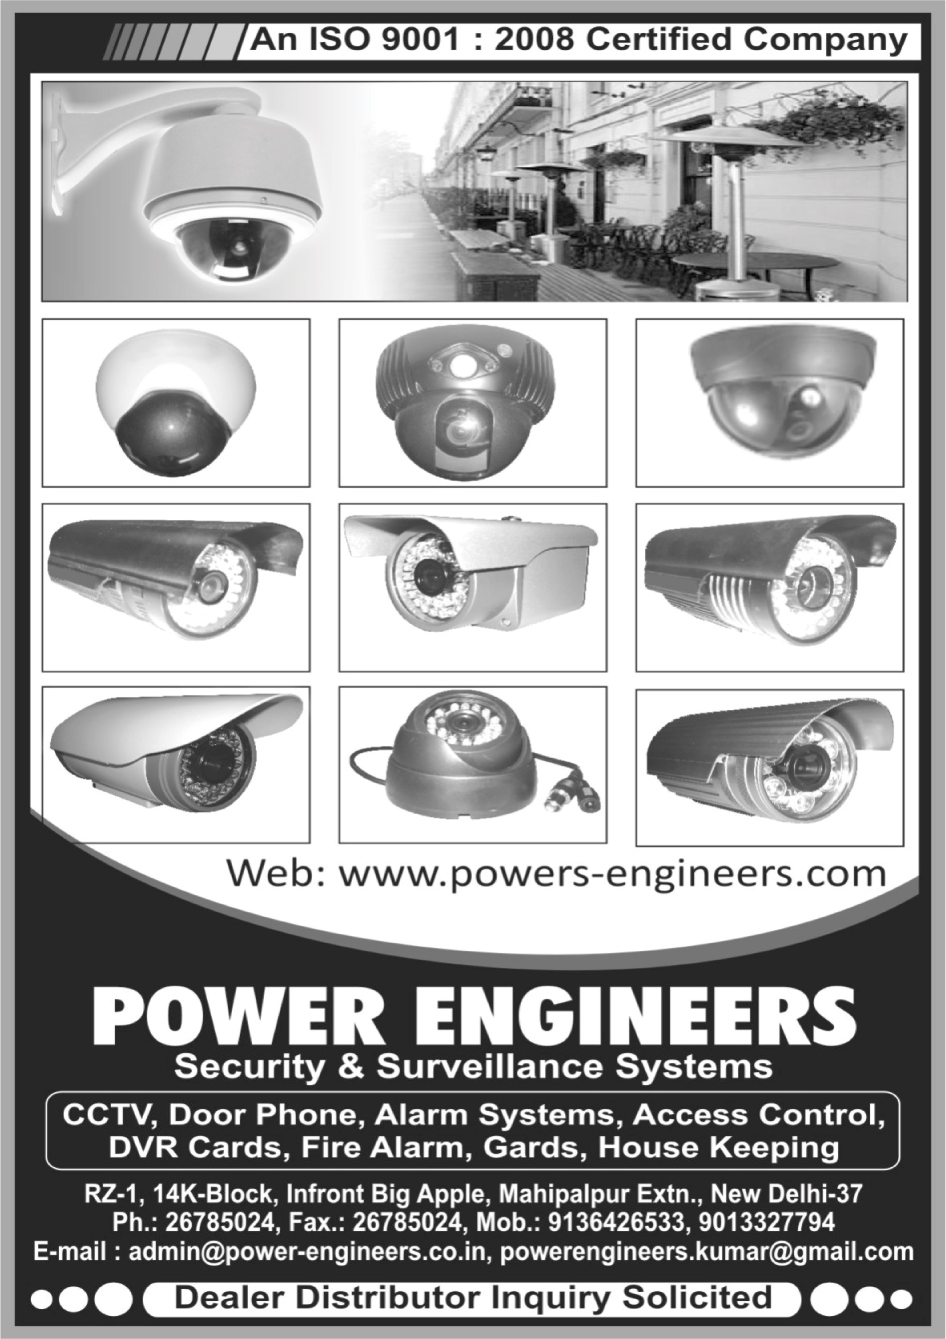 Cctv, Door Phone, Alarm Systems, Access Control, Dvr Cards, Fire Alarm, Gards, House Keeping, Security Systems, Surveillance Systems, Fire Safety Products